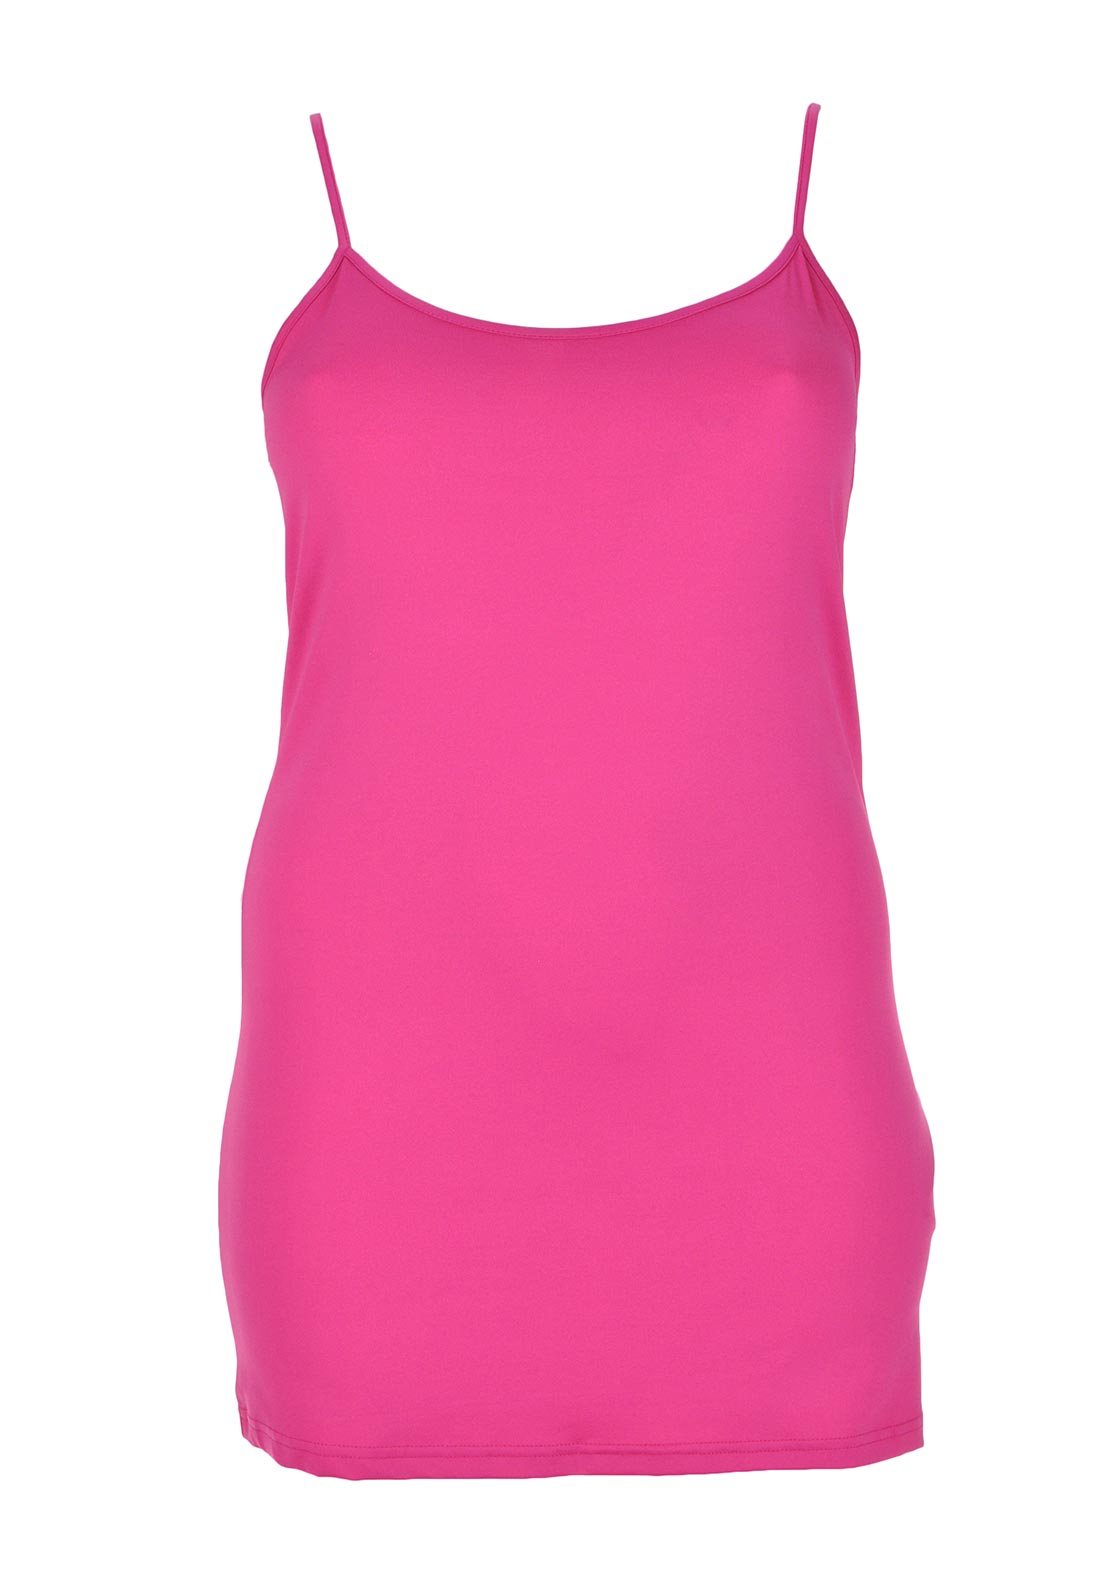 Ciso Sleeveless Vest Top, Pink